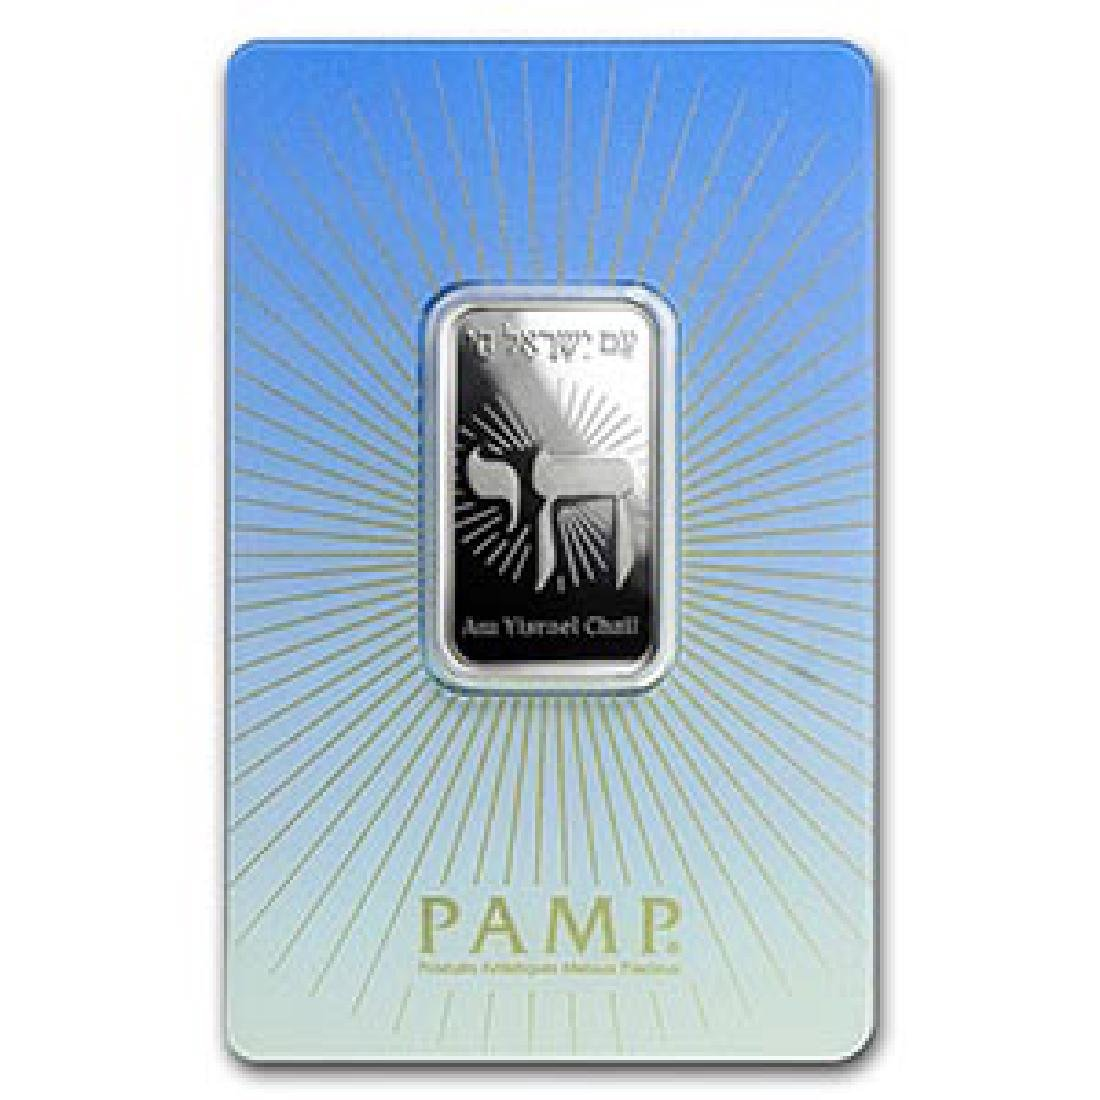 10 g Silver Bar - PAMP Suisse Religious Series (Am Yisr